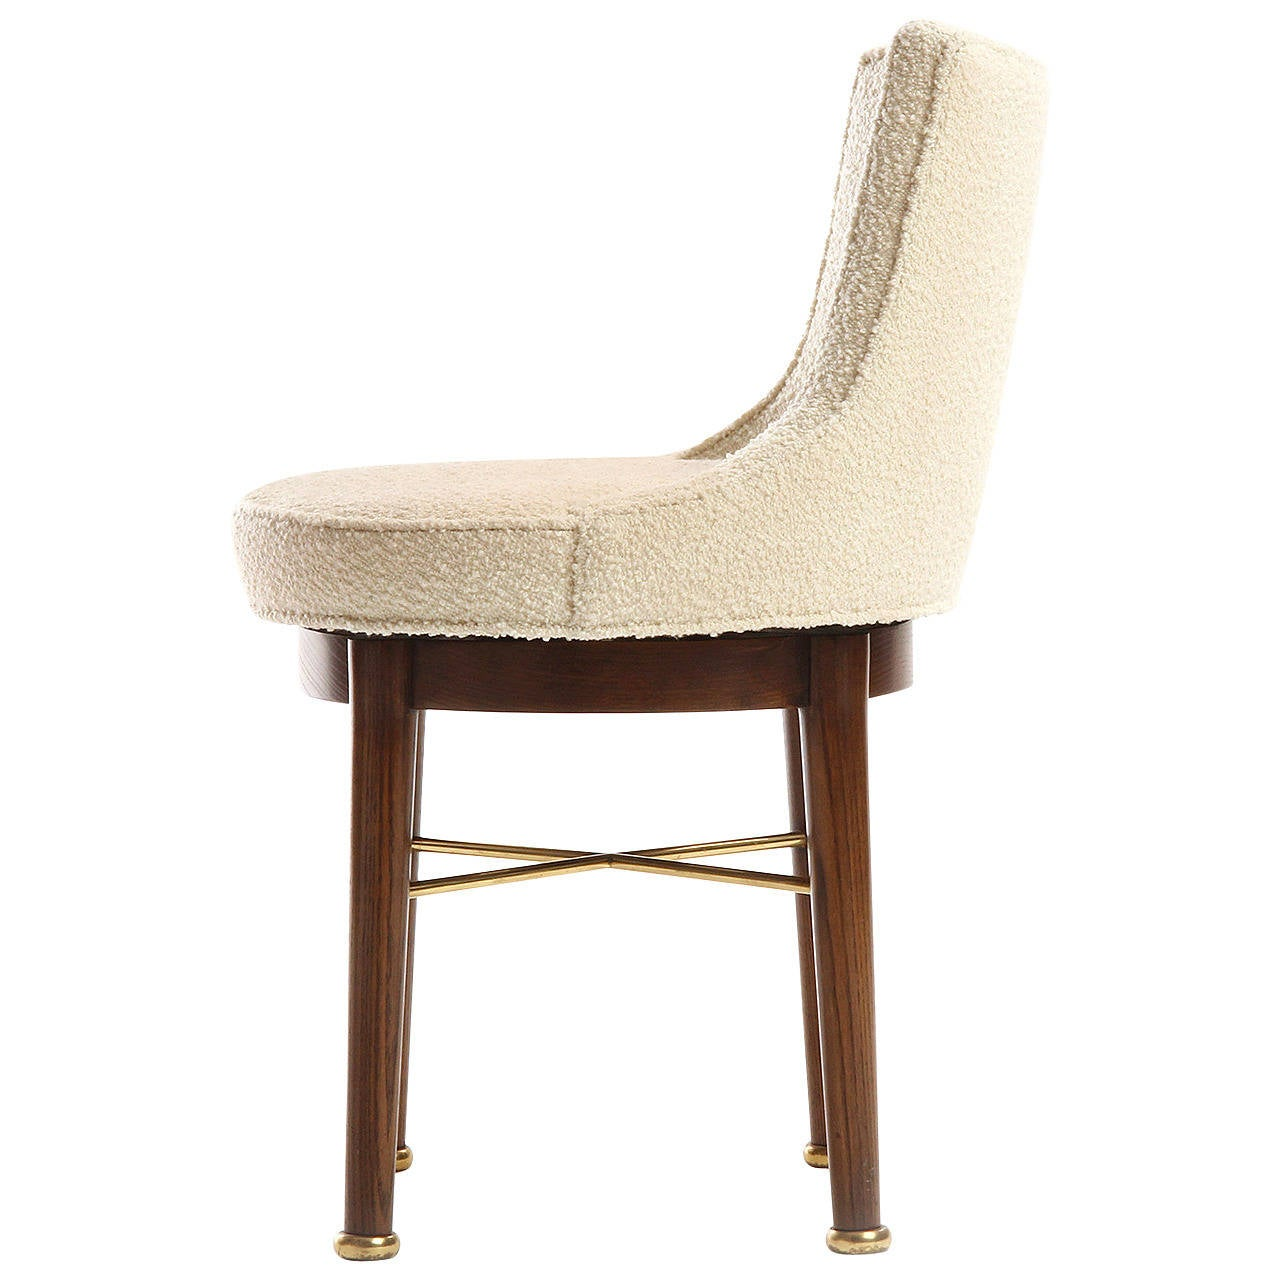 Vanity Chair For Sale Swiveling Vanity Chair By Edward Wormley For Sale At 1stdibs